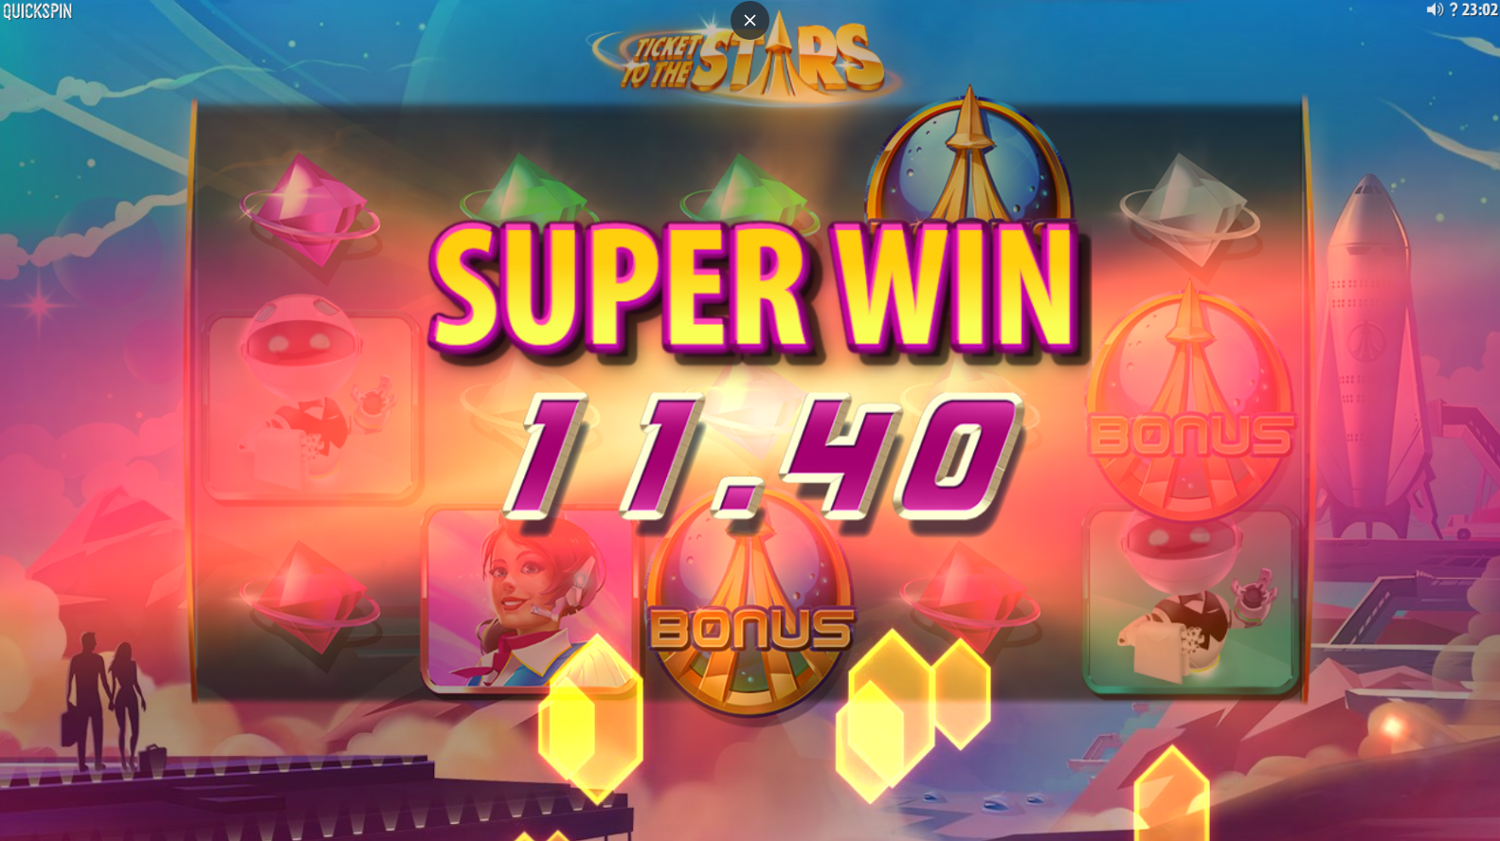 Ticket to the Stars super win